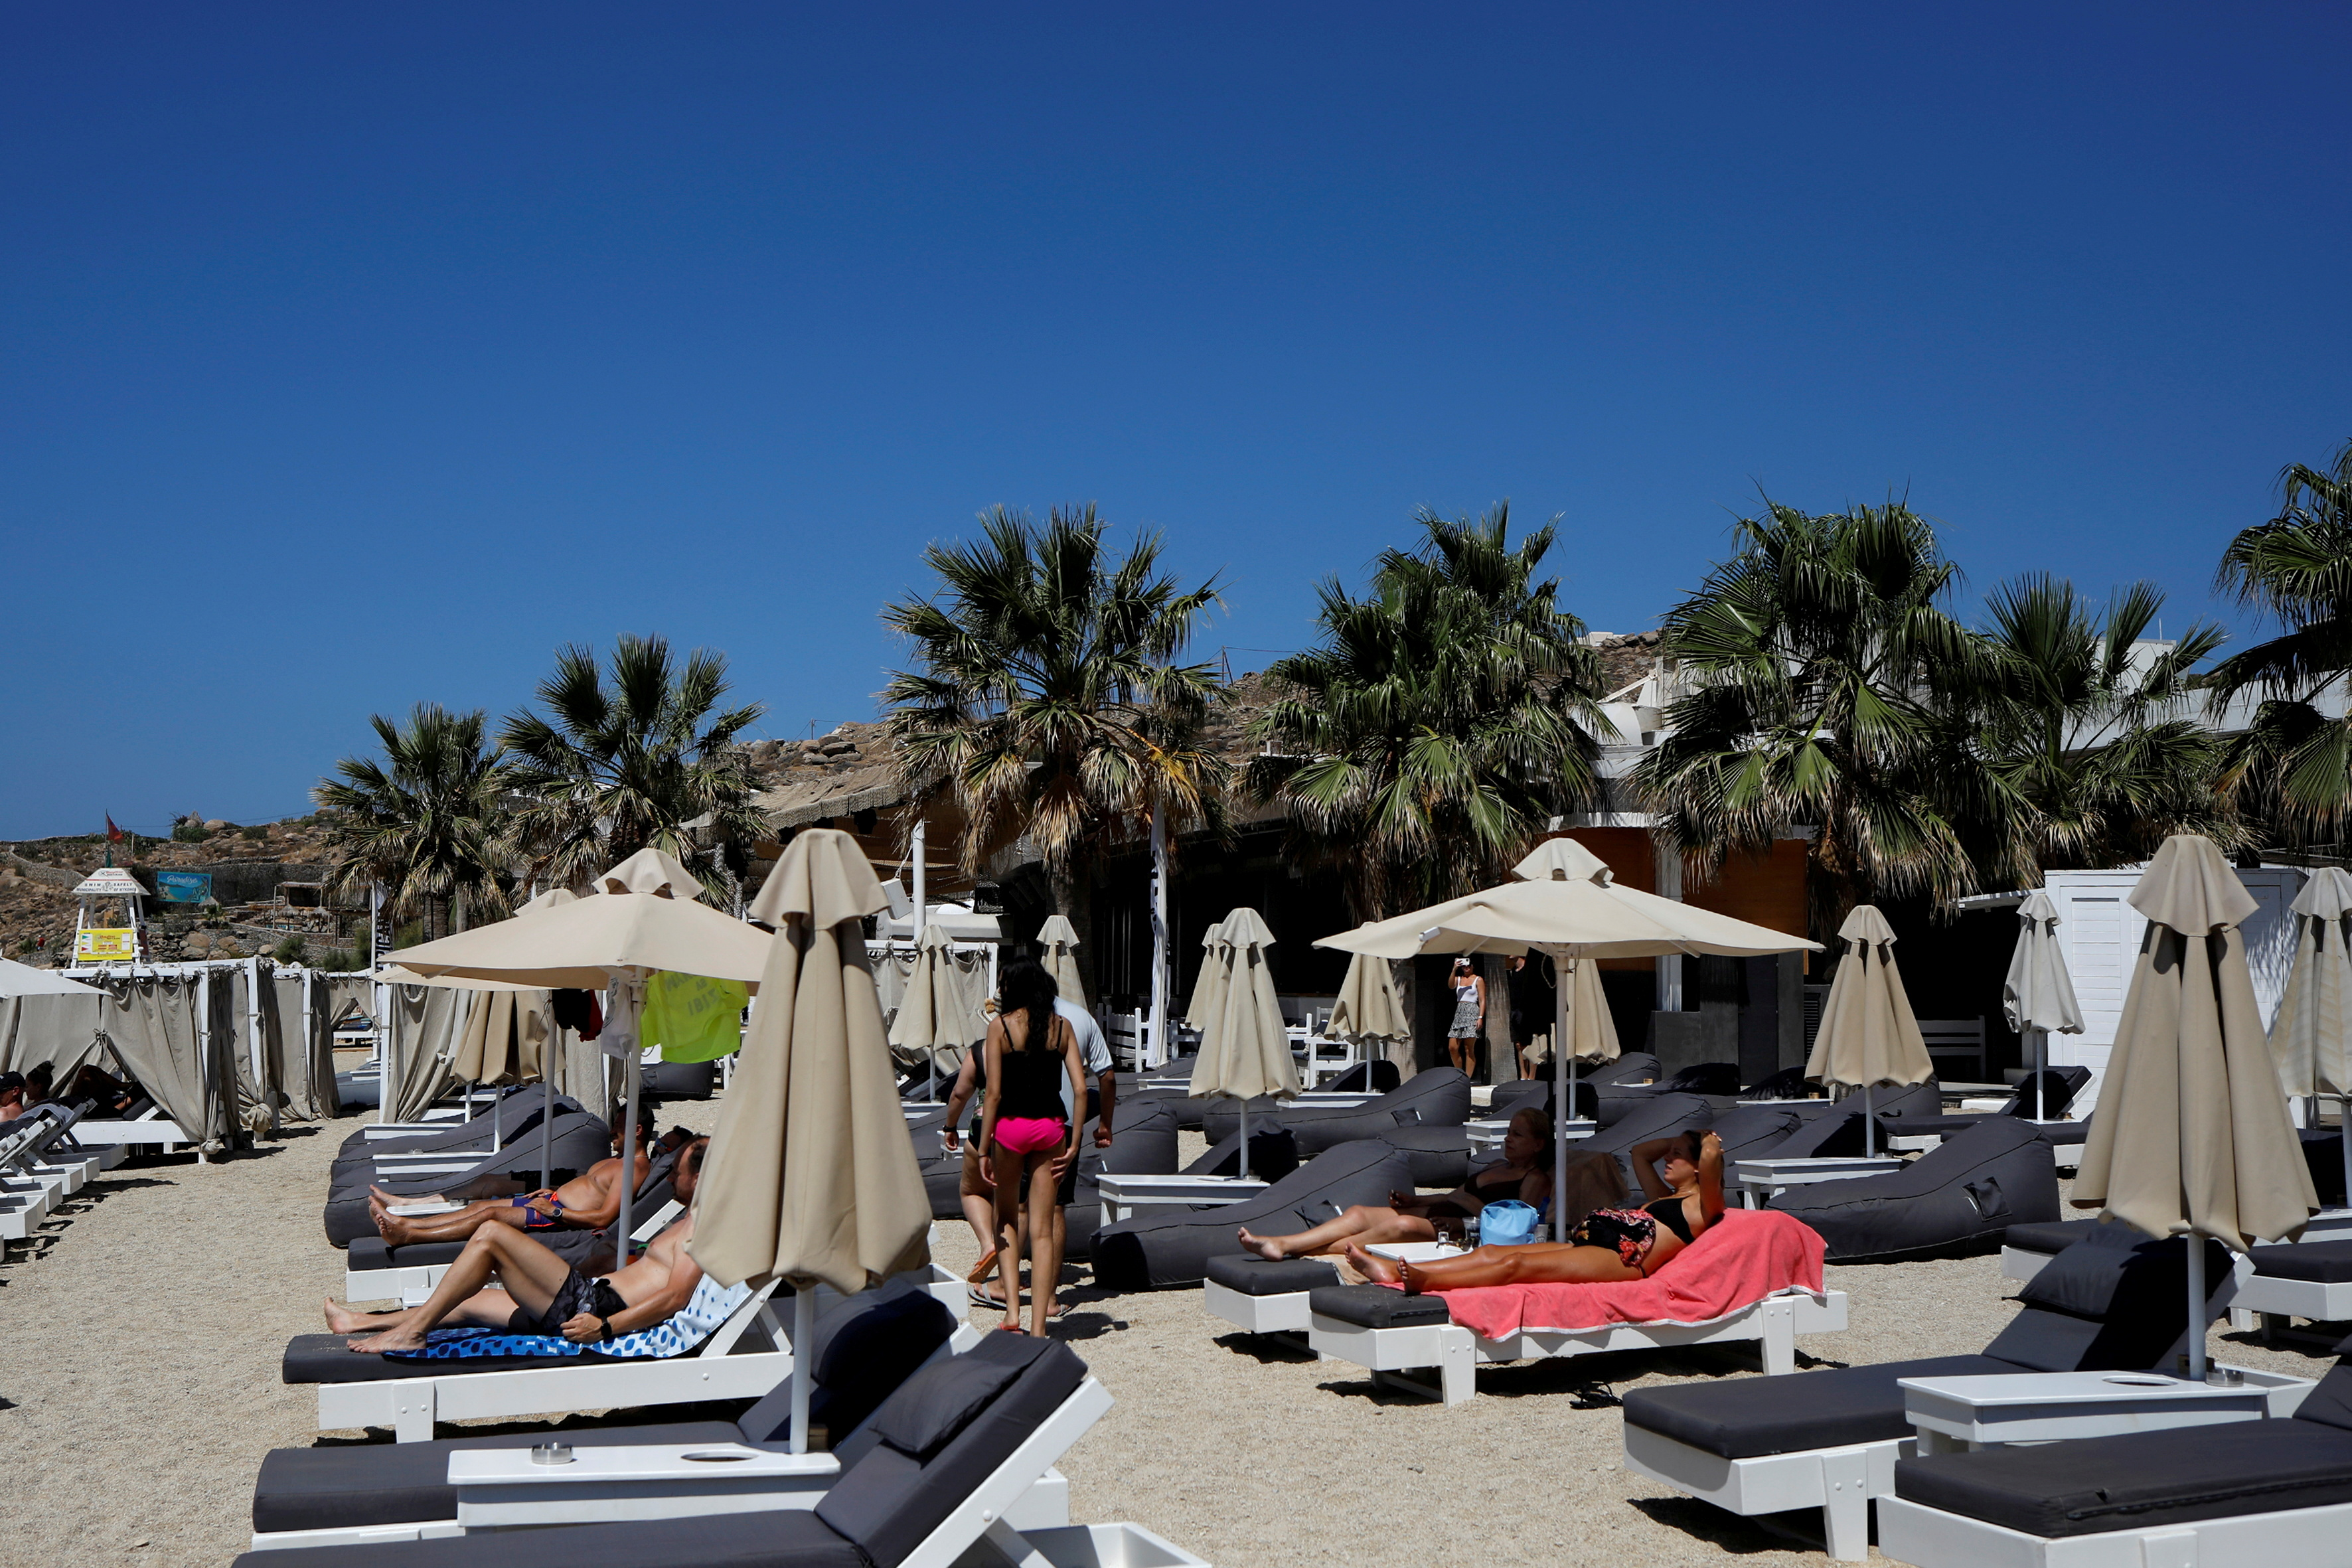 People lay on sunbeds at the Tropicana beach bar in Paradise beach on the island of Mykonos, Greece, July 18, 2021. REUTERS/Louiza Vradi/File Photo